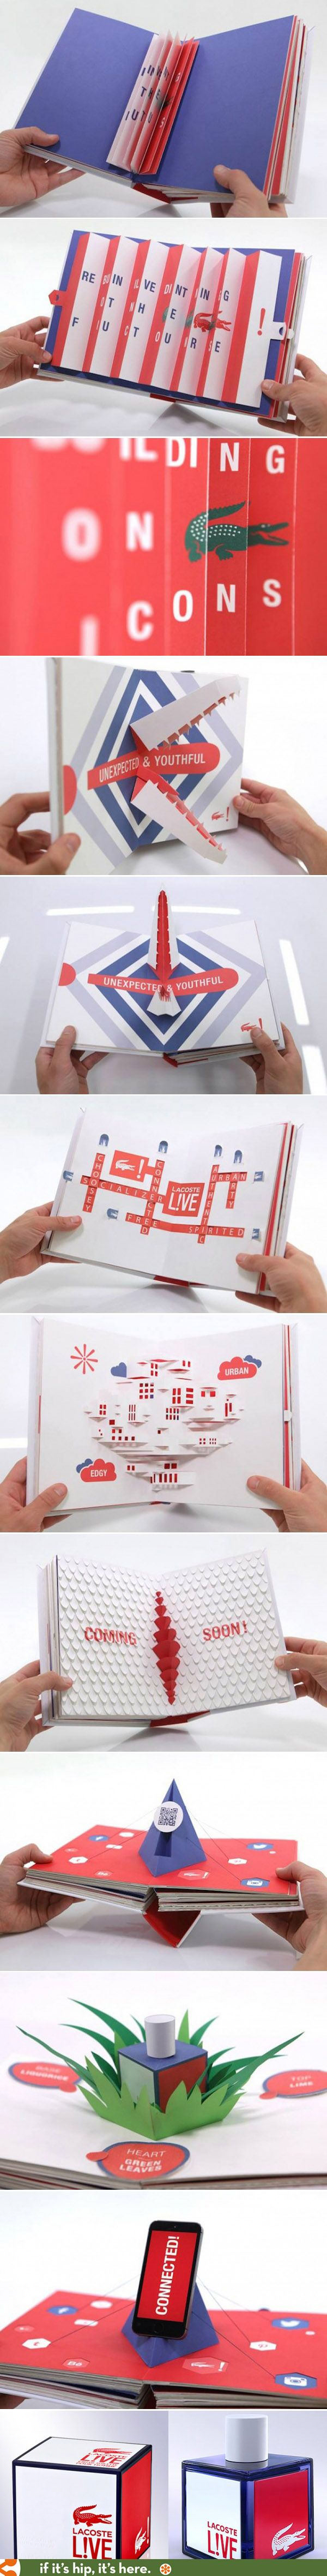 Lacoste Paper Art Pop-Up Book created for the launch of their new men's…